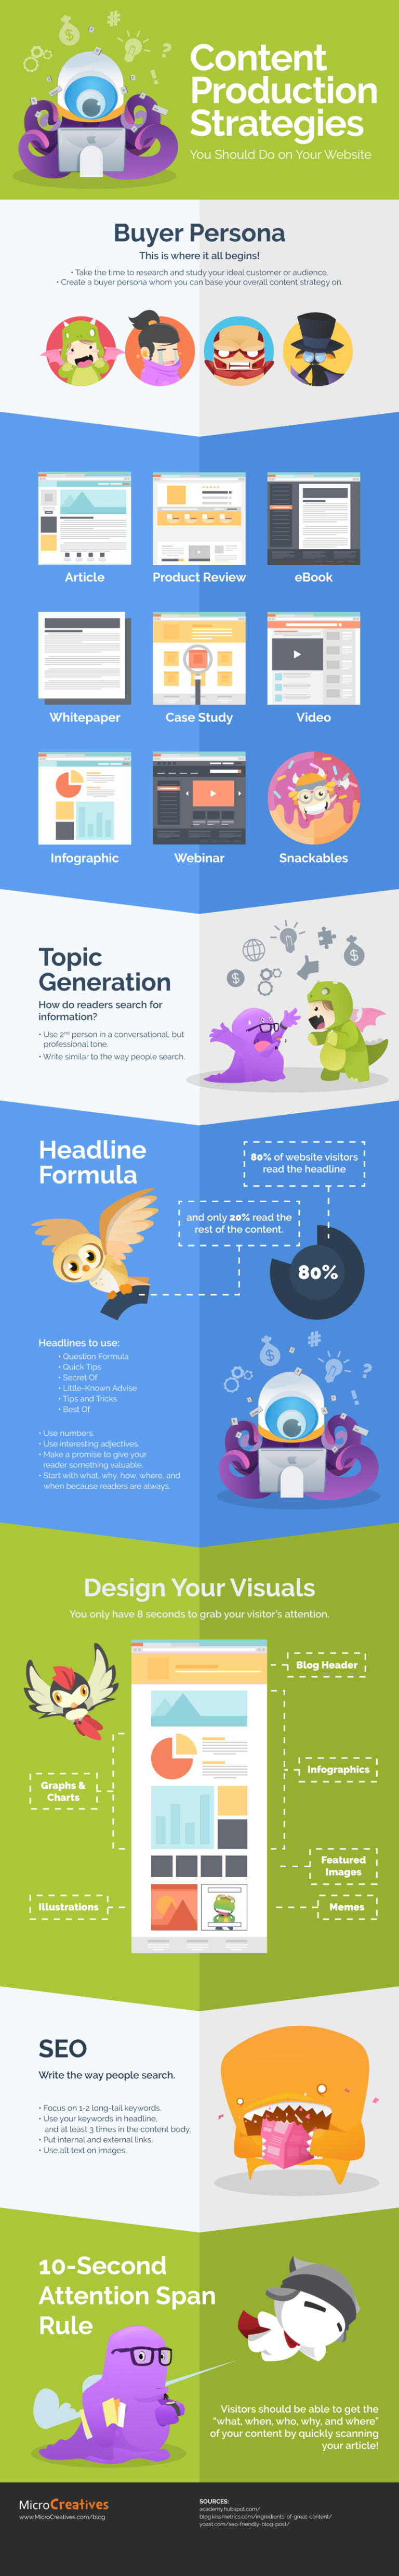 Infographic outlines key content strategy tips